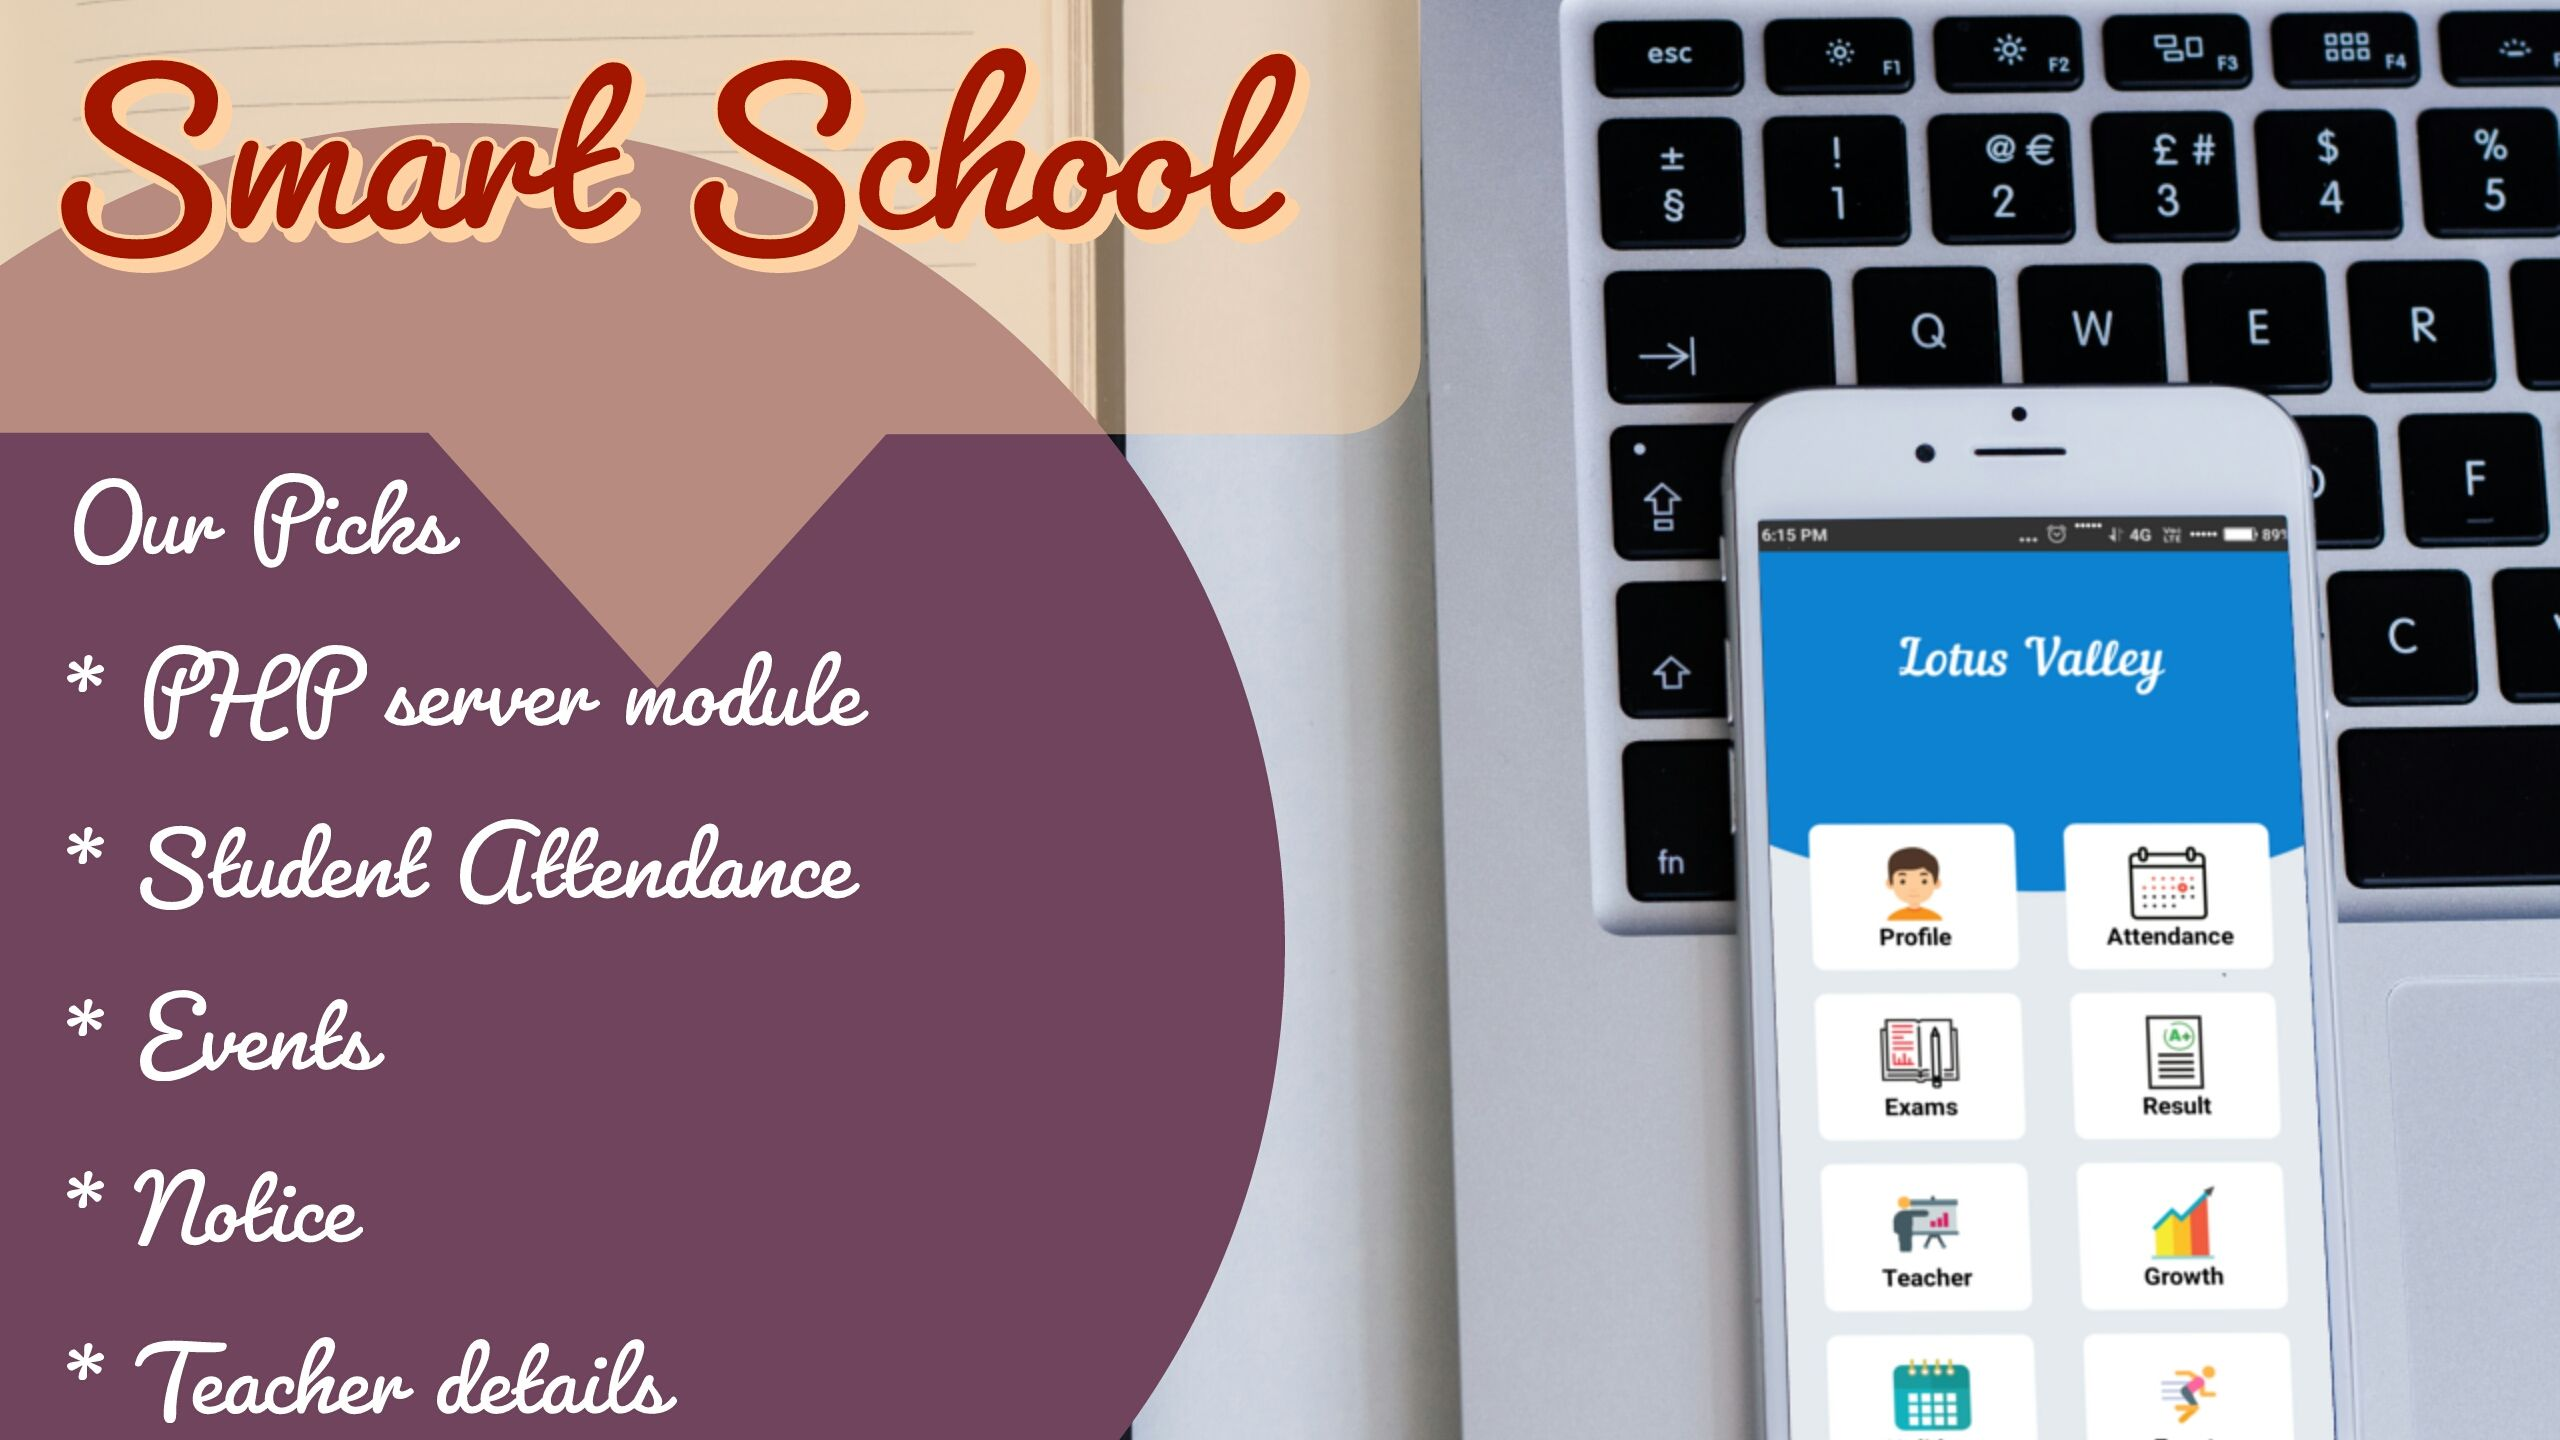 School Management System - Android Source Code Screenshot 1